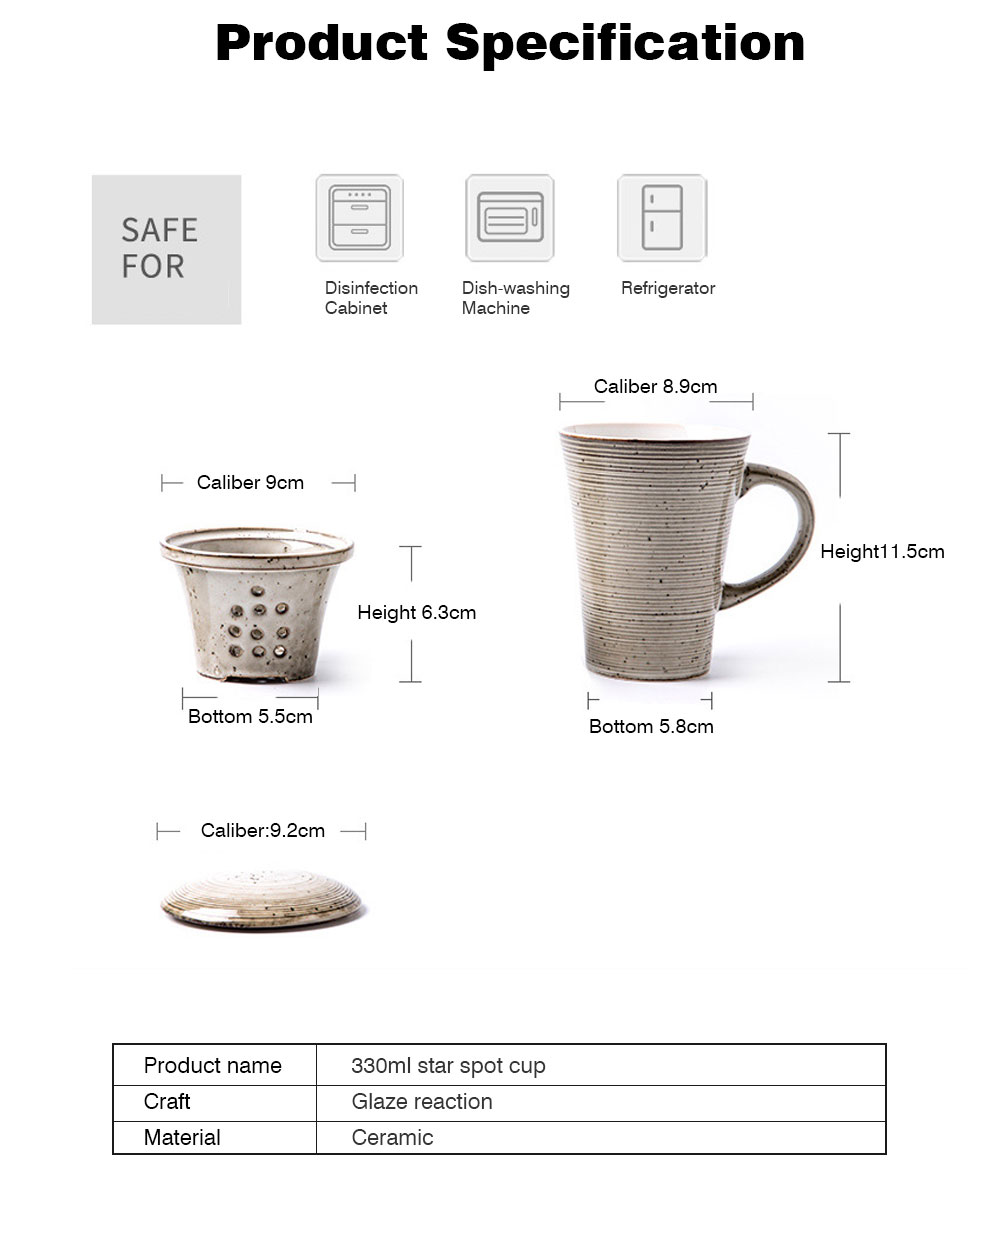 Ceramic Mug Cup with Filter Steepe Ideal for Office, Home, Glazed Mug Cup with Lid for Tea, Coffee, Porcelain Water Mug Cup 330ml 8